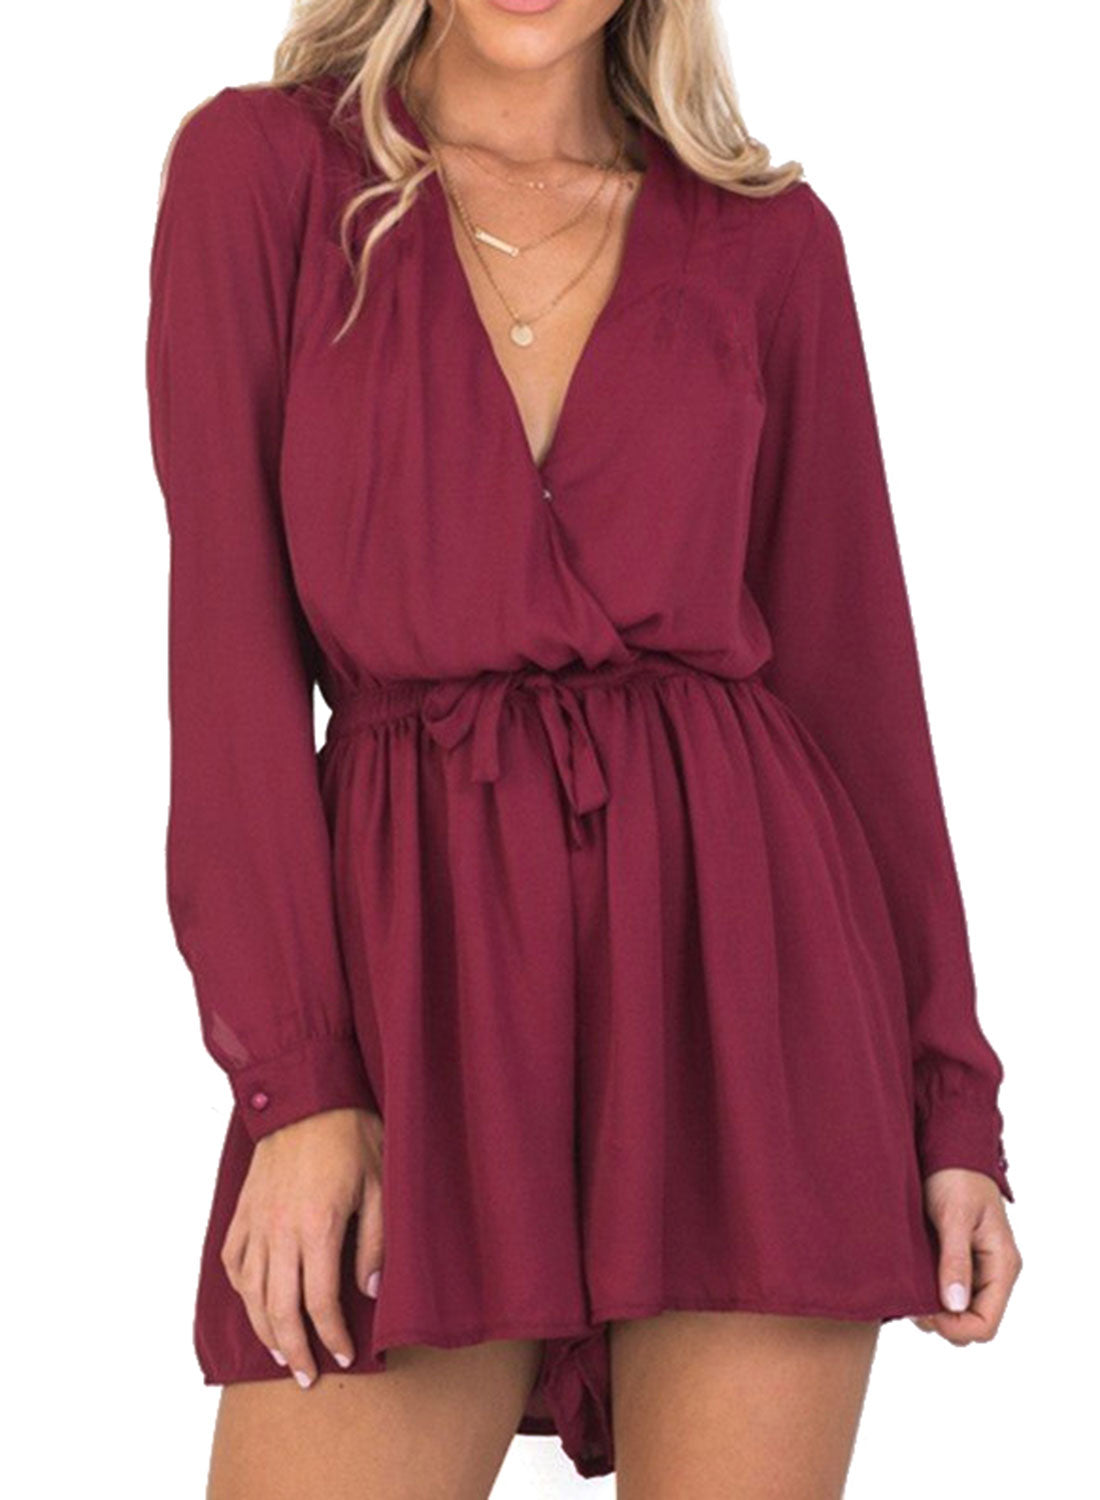 Long Sleeve Cross V Neck Elastic Wasit Romper